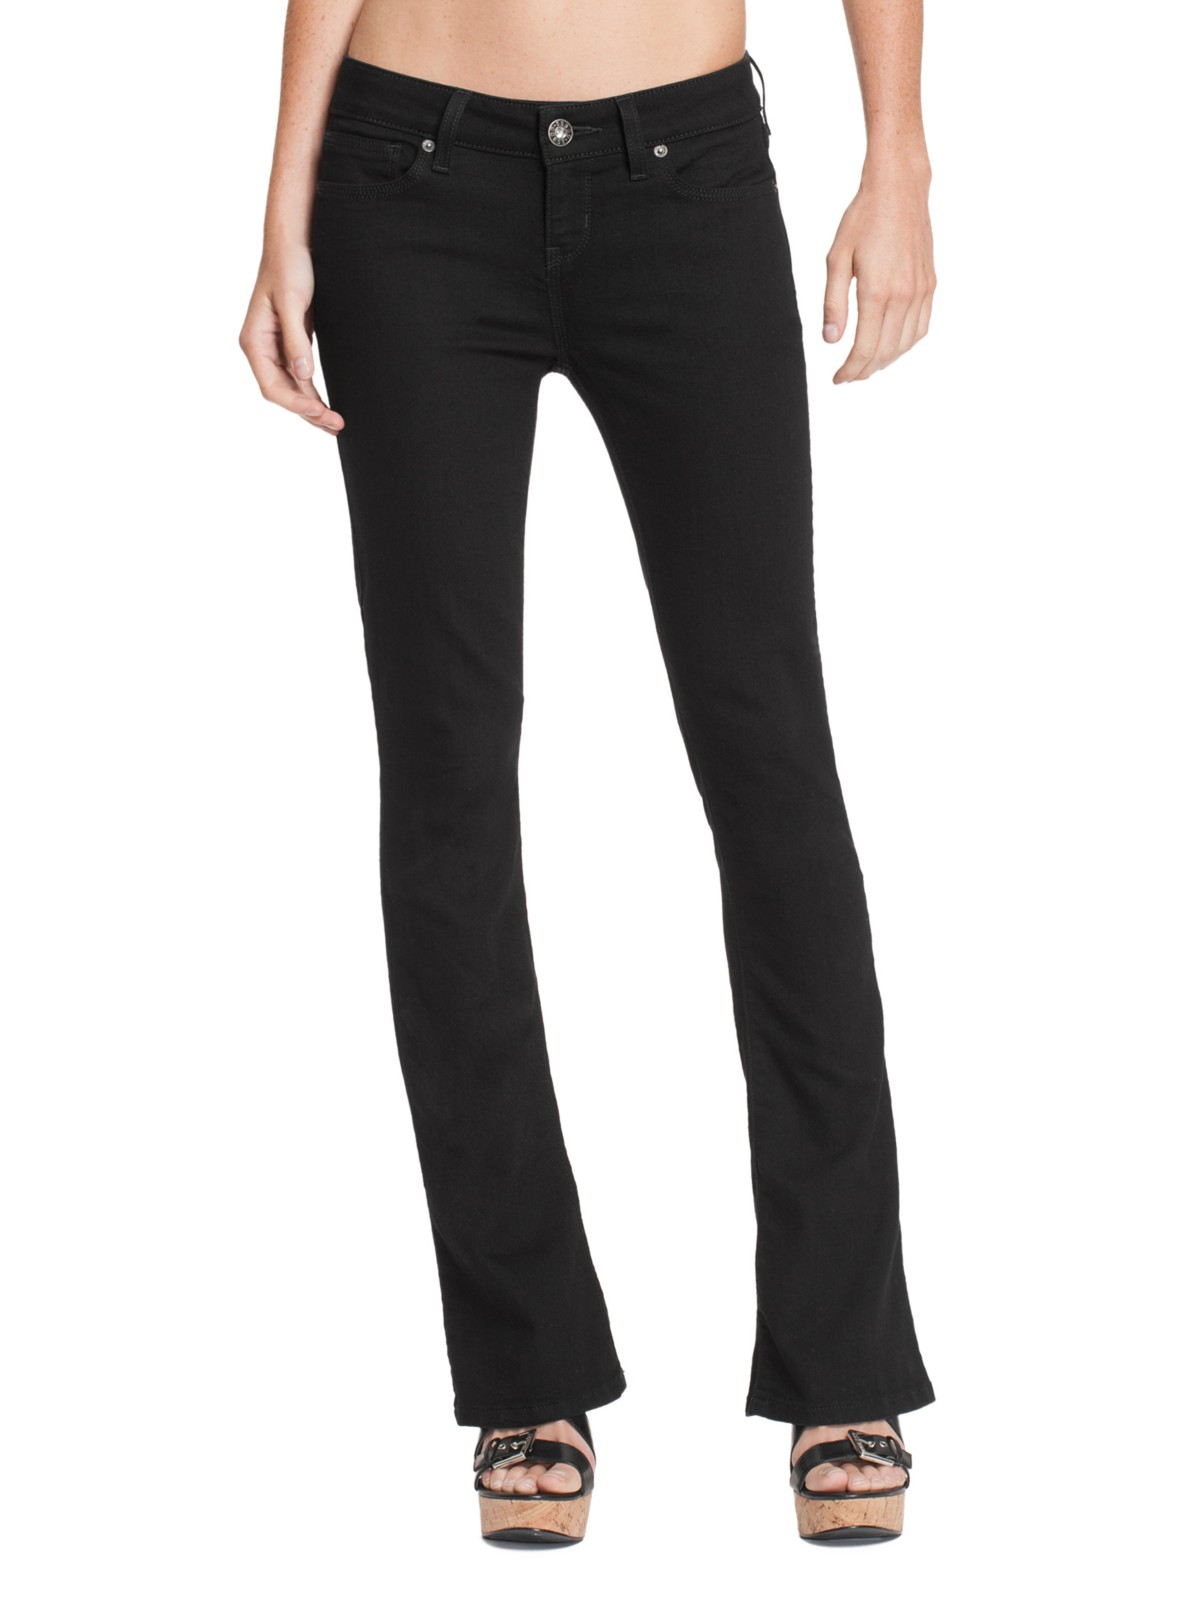 Kelly by Clinton Kelly Plus Size Pants 2X Ponte Knit Boot Cut Black. Sold by Phoenix Trading Company. $ $ Women with Control Pants Sz XXS Ponte di Roma Knit Boot Cut Blue. Sold by Phoenix Trading Company. $ $ Simply Styled Petites' Skinny Ponte Knit Pants. Sold by Sears.